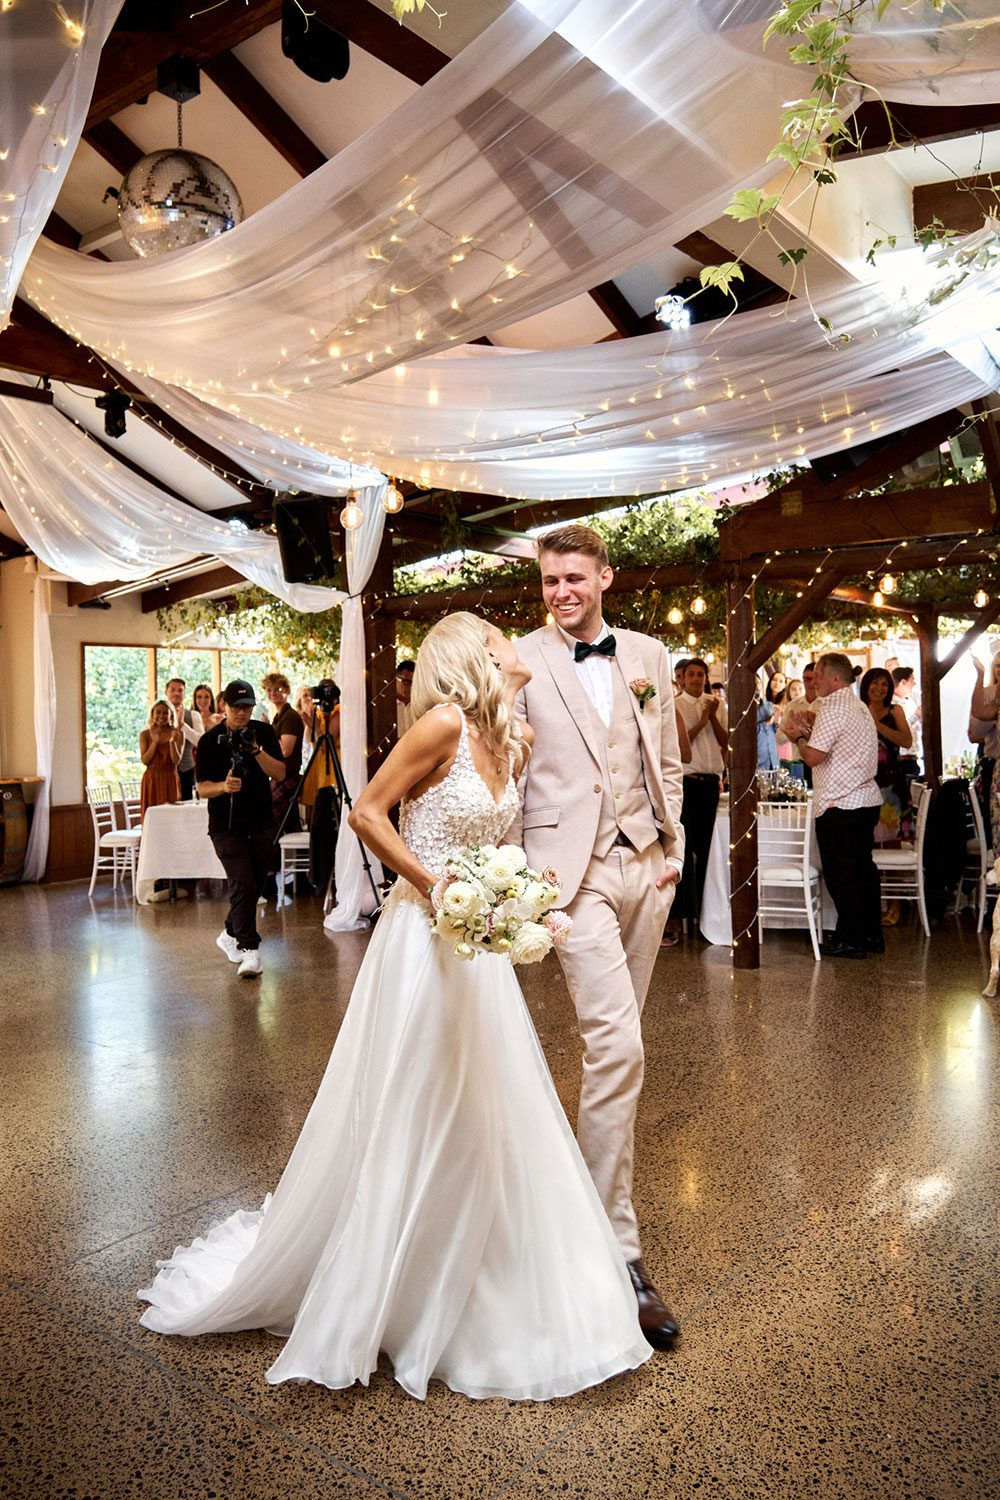 Bride wearing bespoke gown made of silk chiffon with delicate flower lace bodice by Vinka bridal designer Auckland - at reception with groom